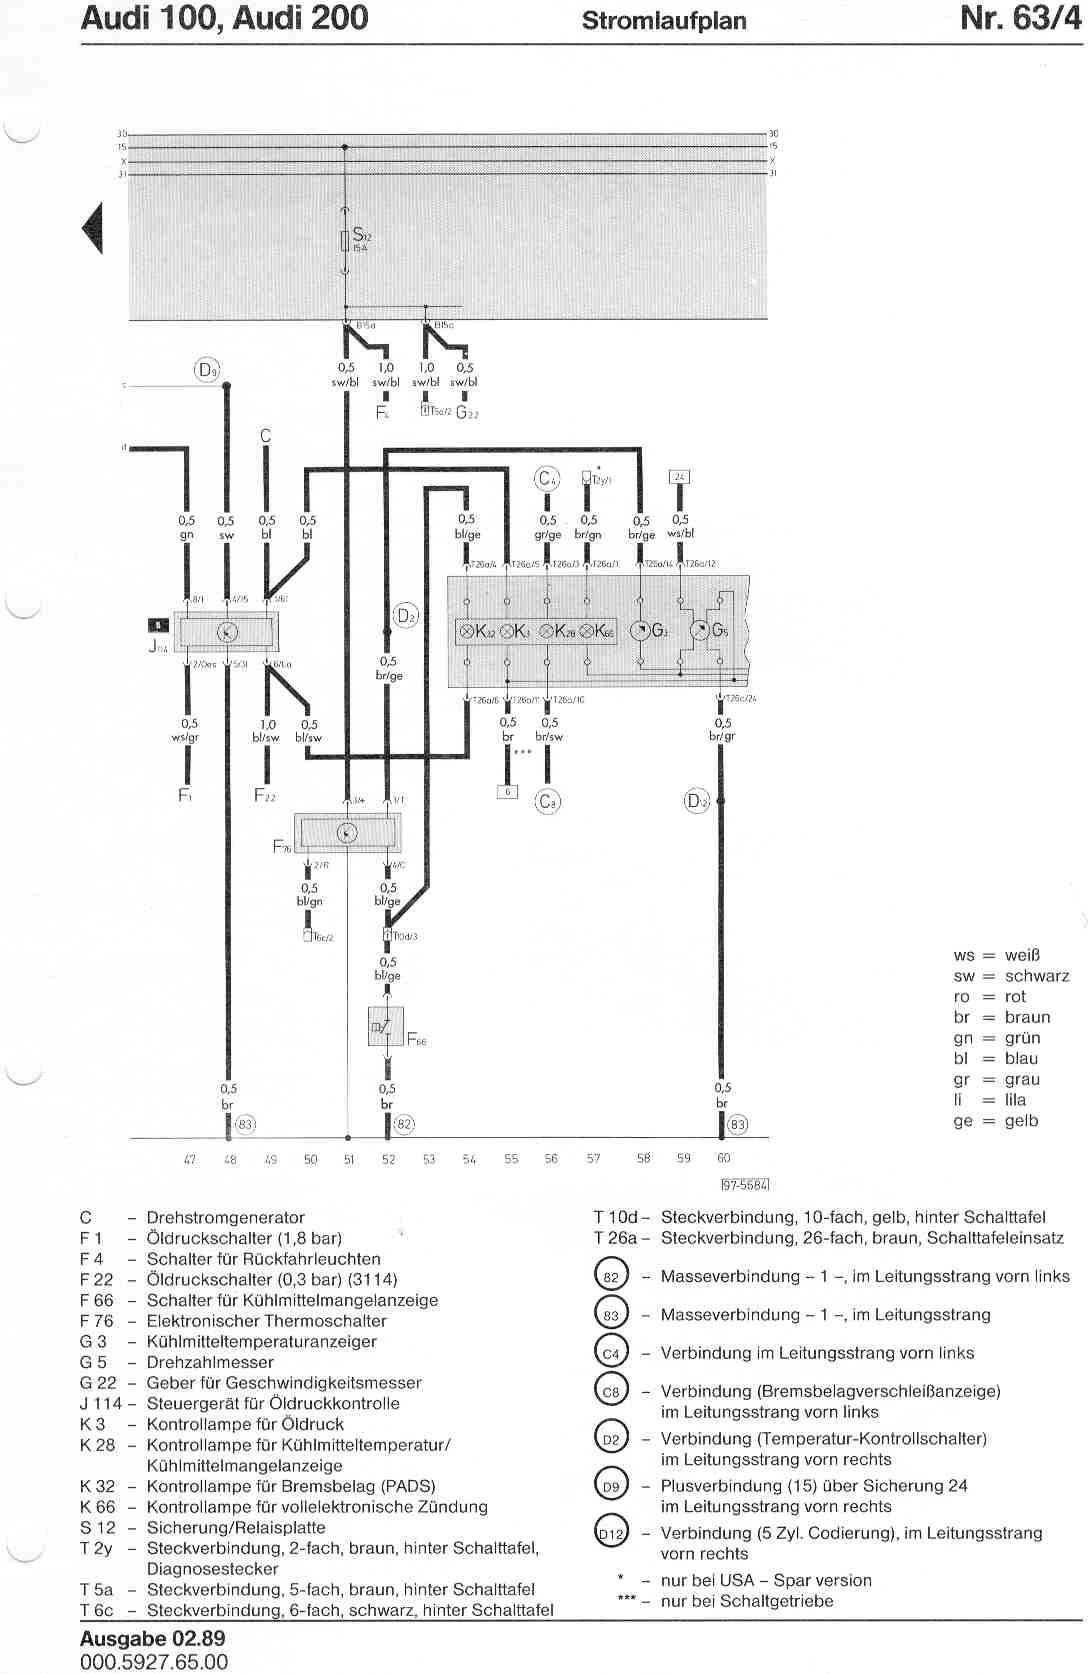 Audi 100 C3 Wiring Diagram Worksheet And 1974 Corvette Pdf 200 Factory Diagrams Rh Sizov Org One Wire